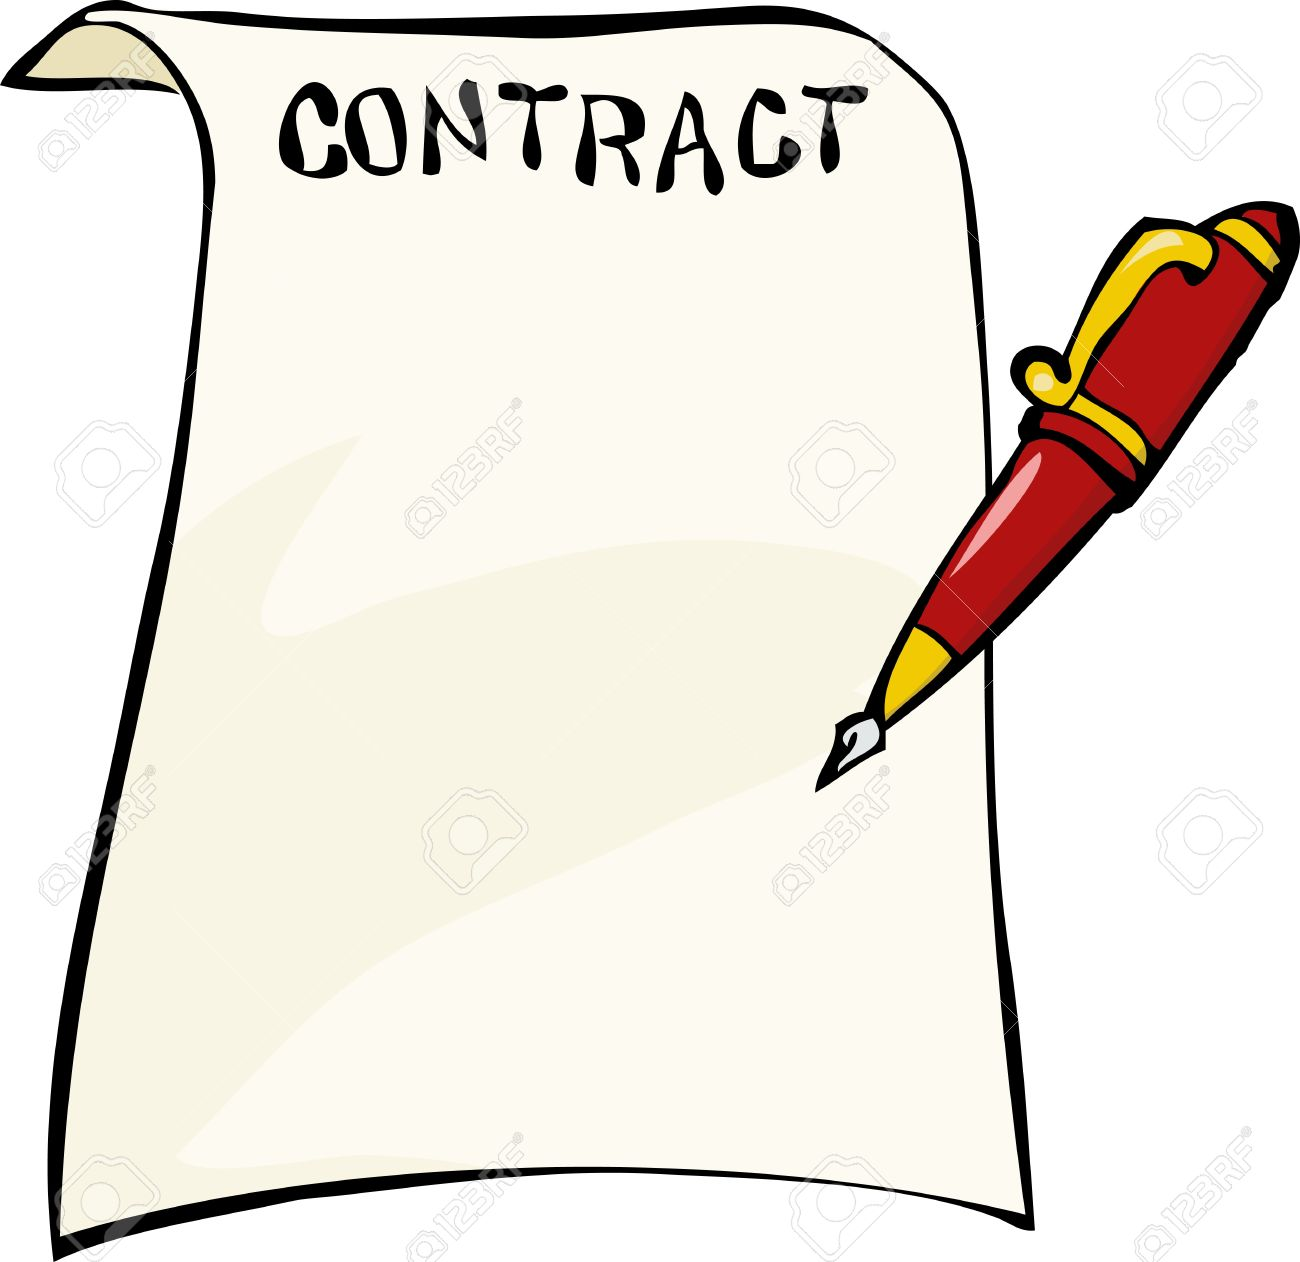 207 Contract free clipart.